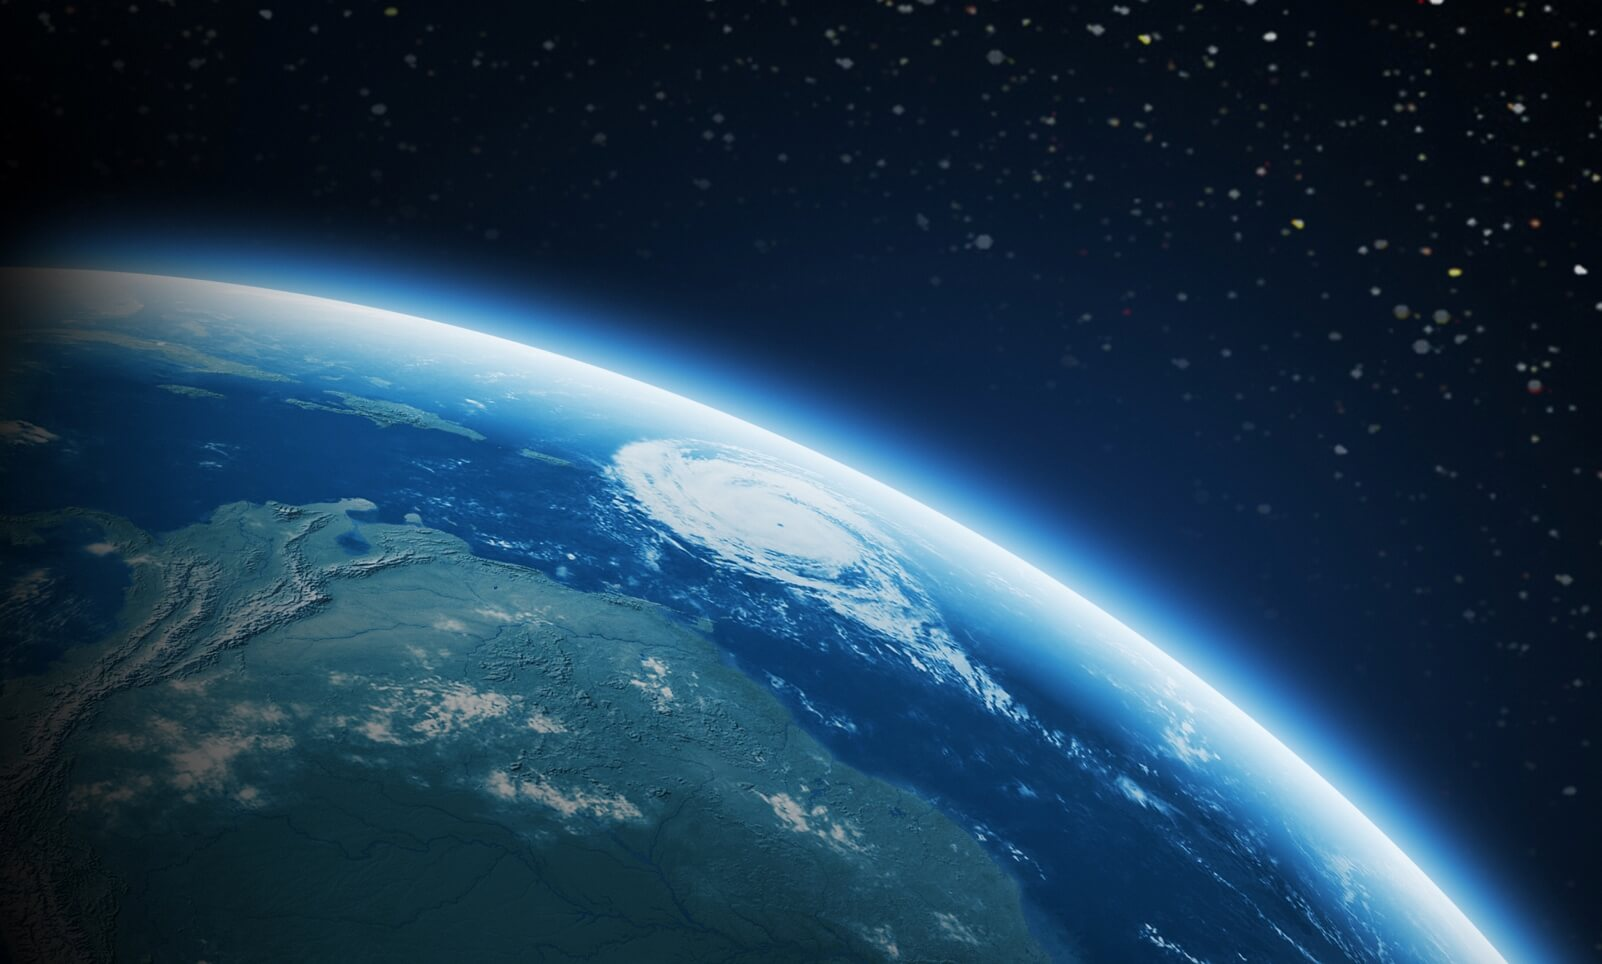 Our Planet Doesn't Just Support Life, It is Also Living Vessel